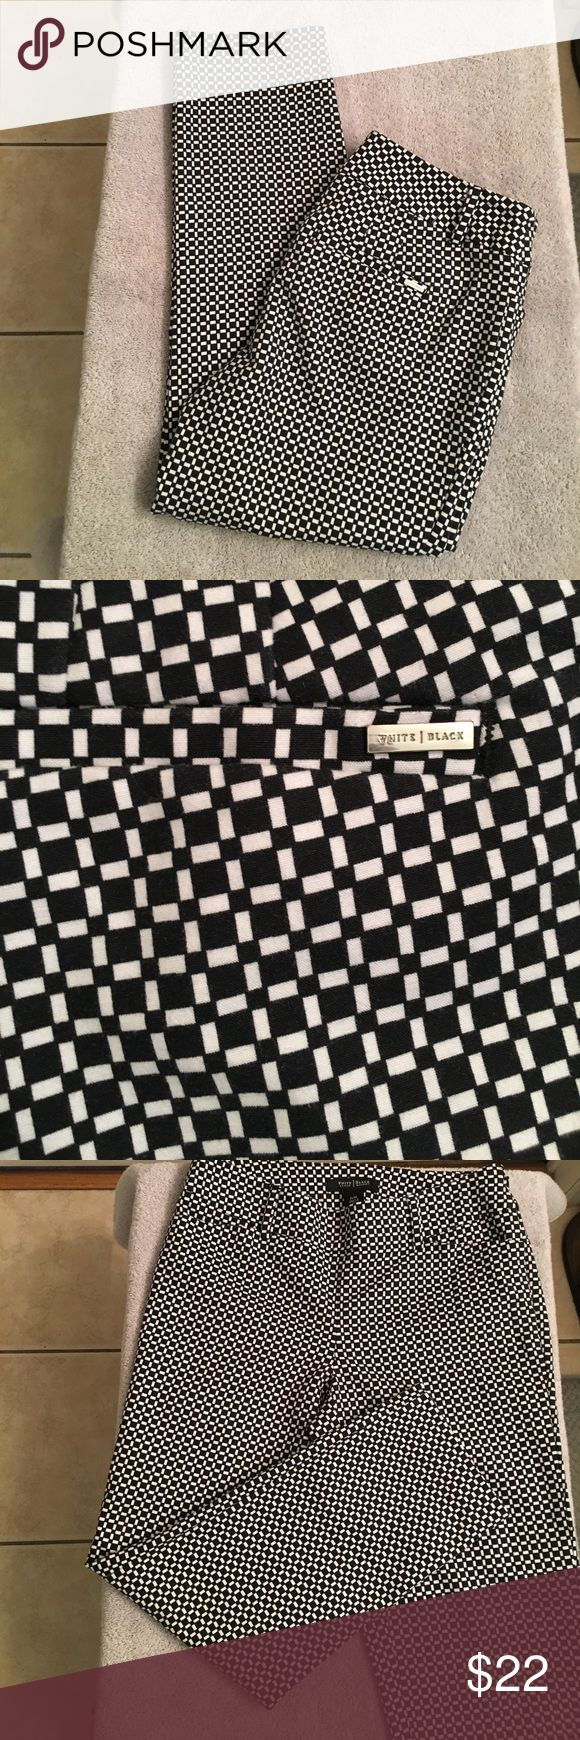 """White House Black Market Ankle Pants EUC. Very cute and stylish. 2 front and 2 rear pockets. Hidden side zip for entry. Checker board pattern. Can be dressy or casual. Inseam 23"""". White House Black Market Pants Ankle & Cropped"""